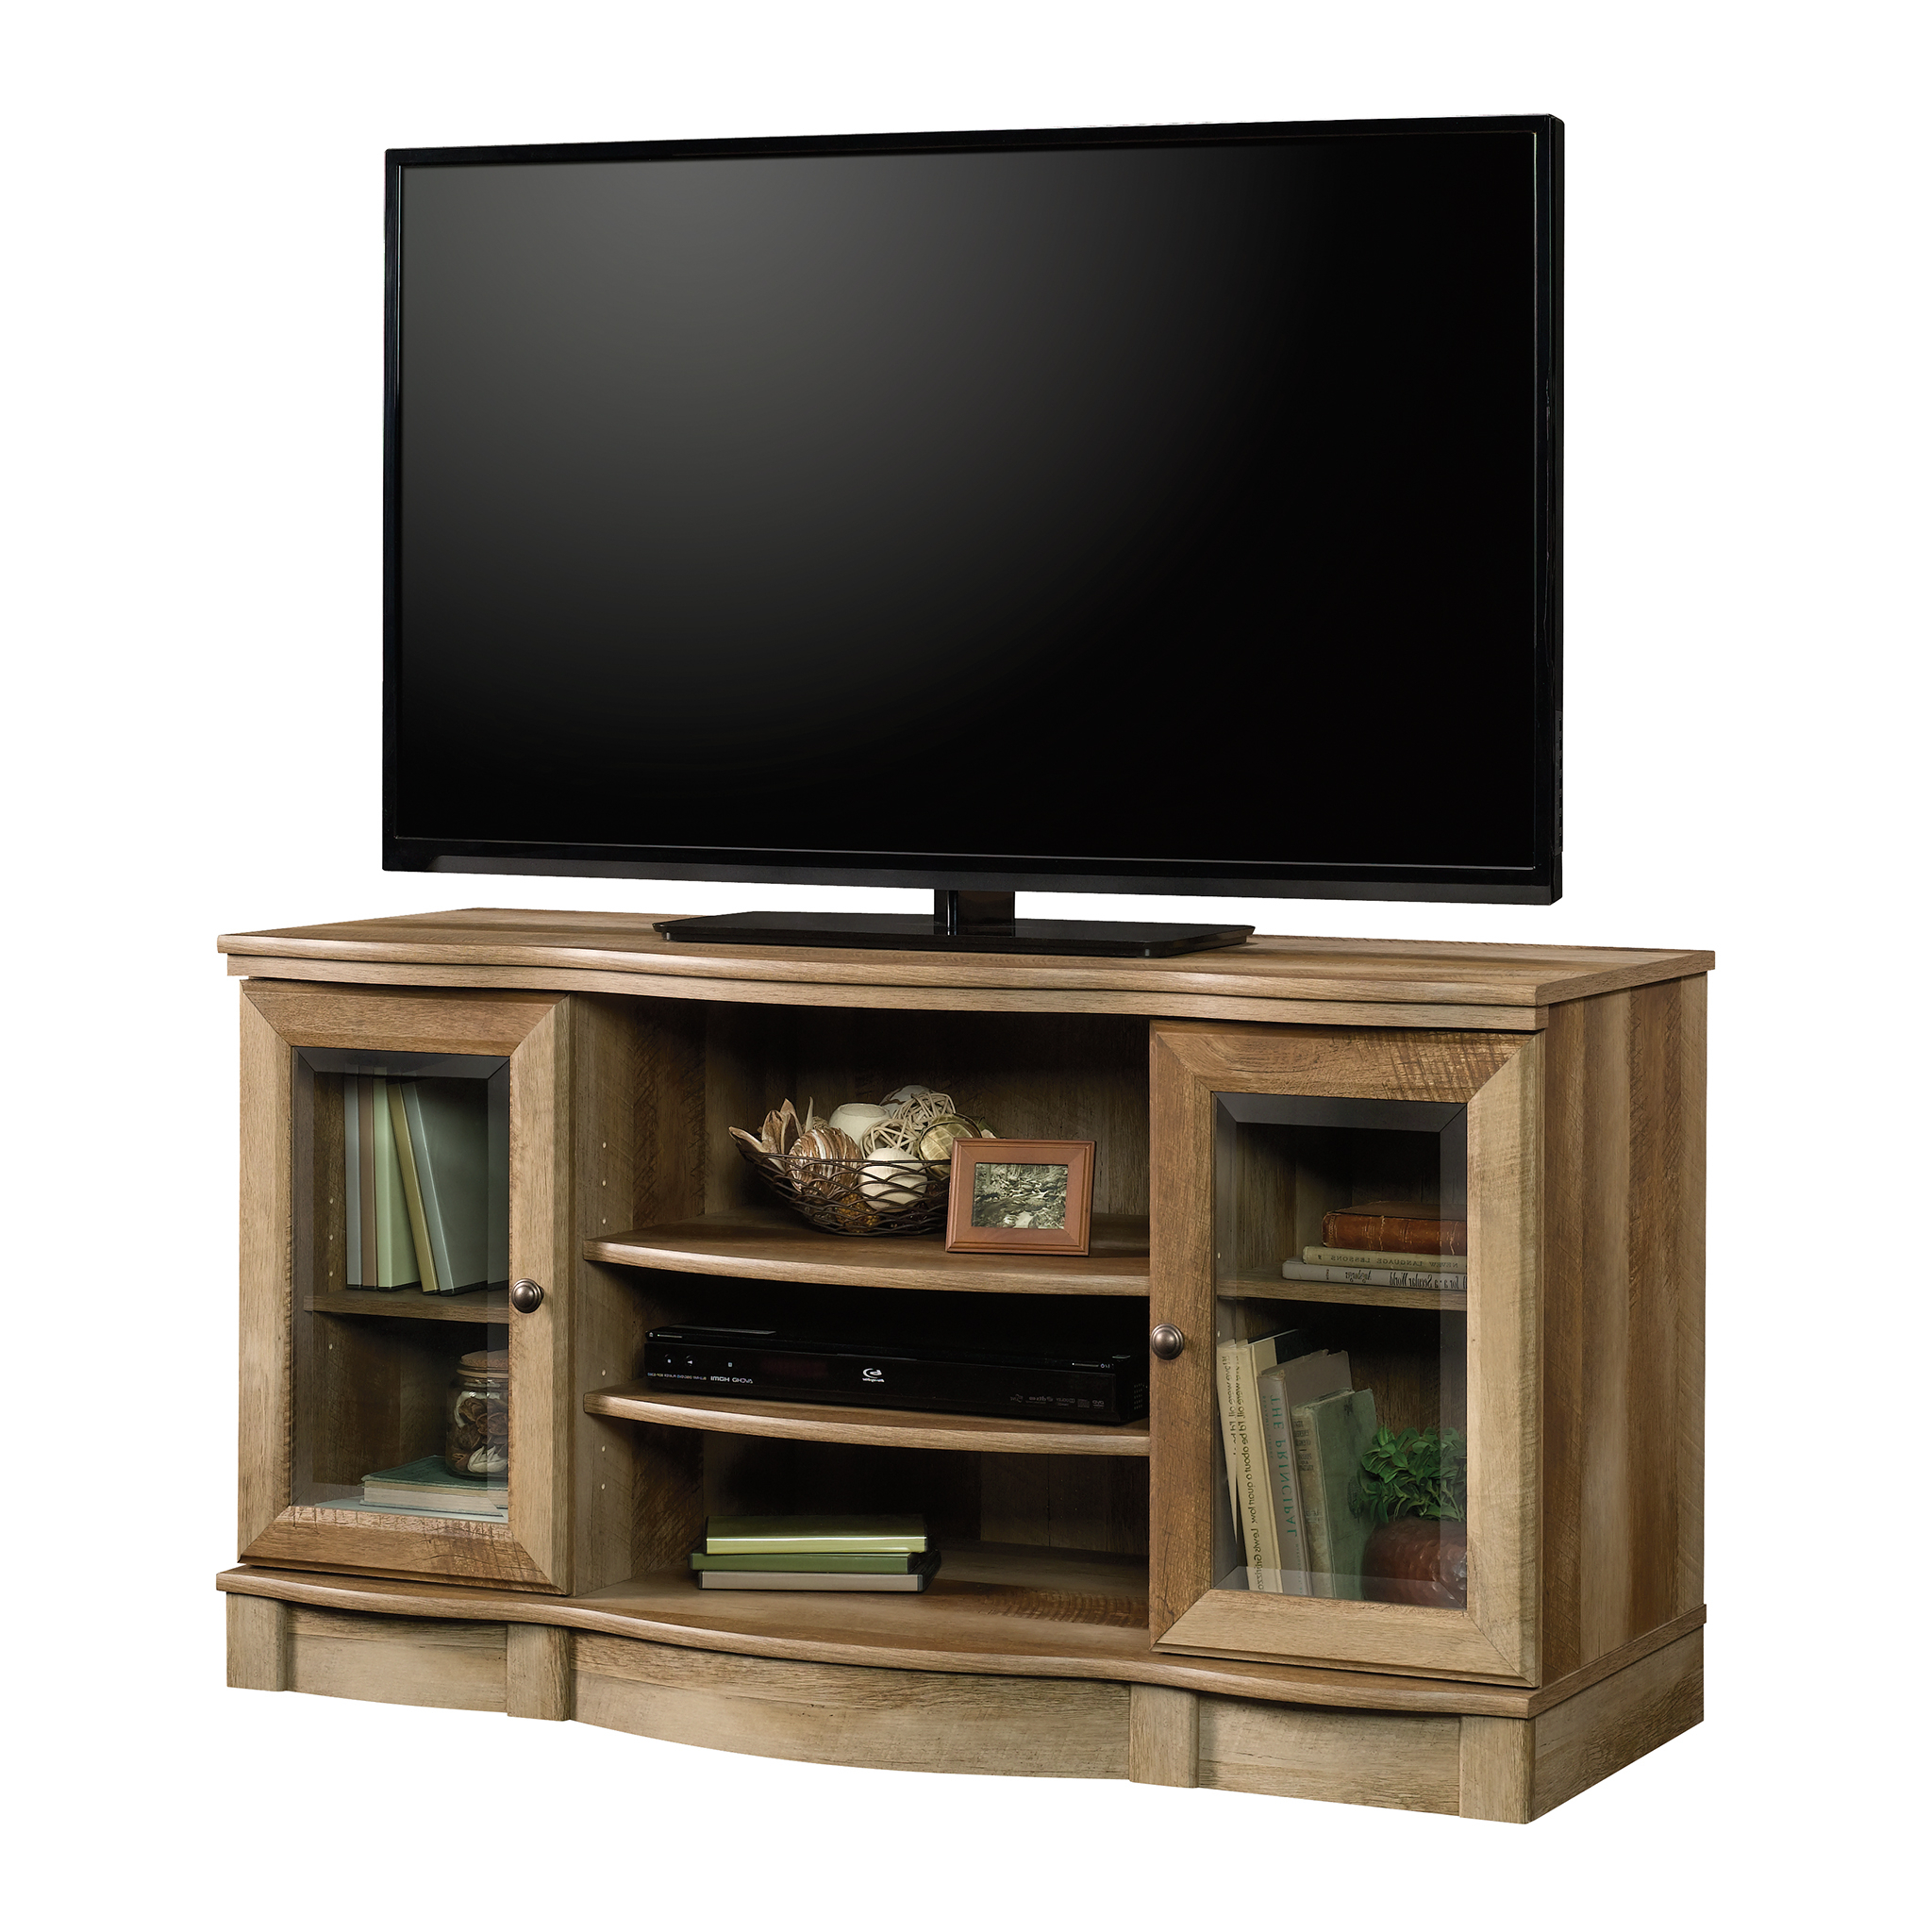 """Sauder Regent Place Tv Stand For Tvs Up To 50"""", Craftsman Intended For Recent Lansing Tv Stands For Tvs Up To 50"""" (View 4 of 25)"""